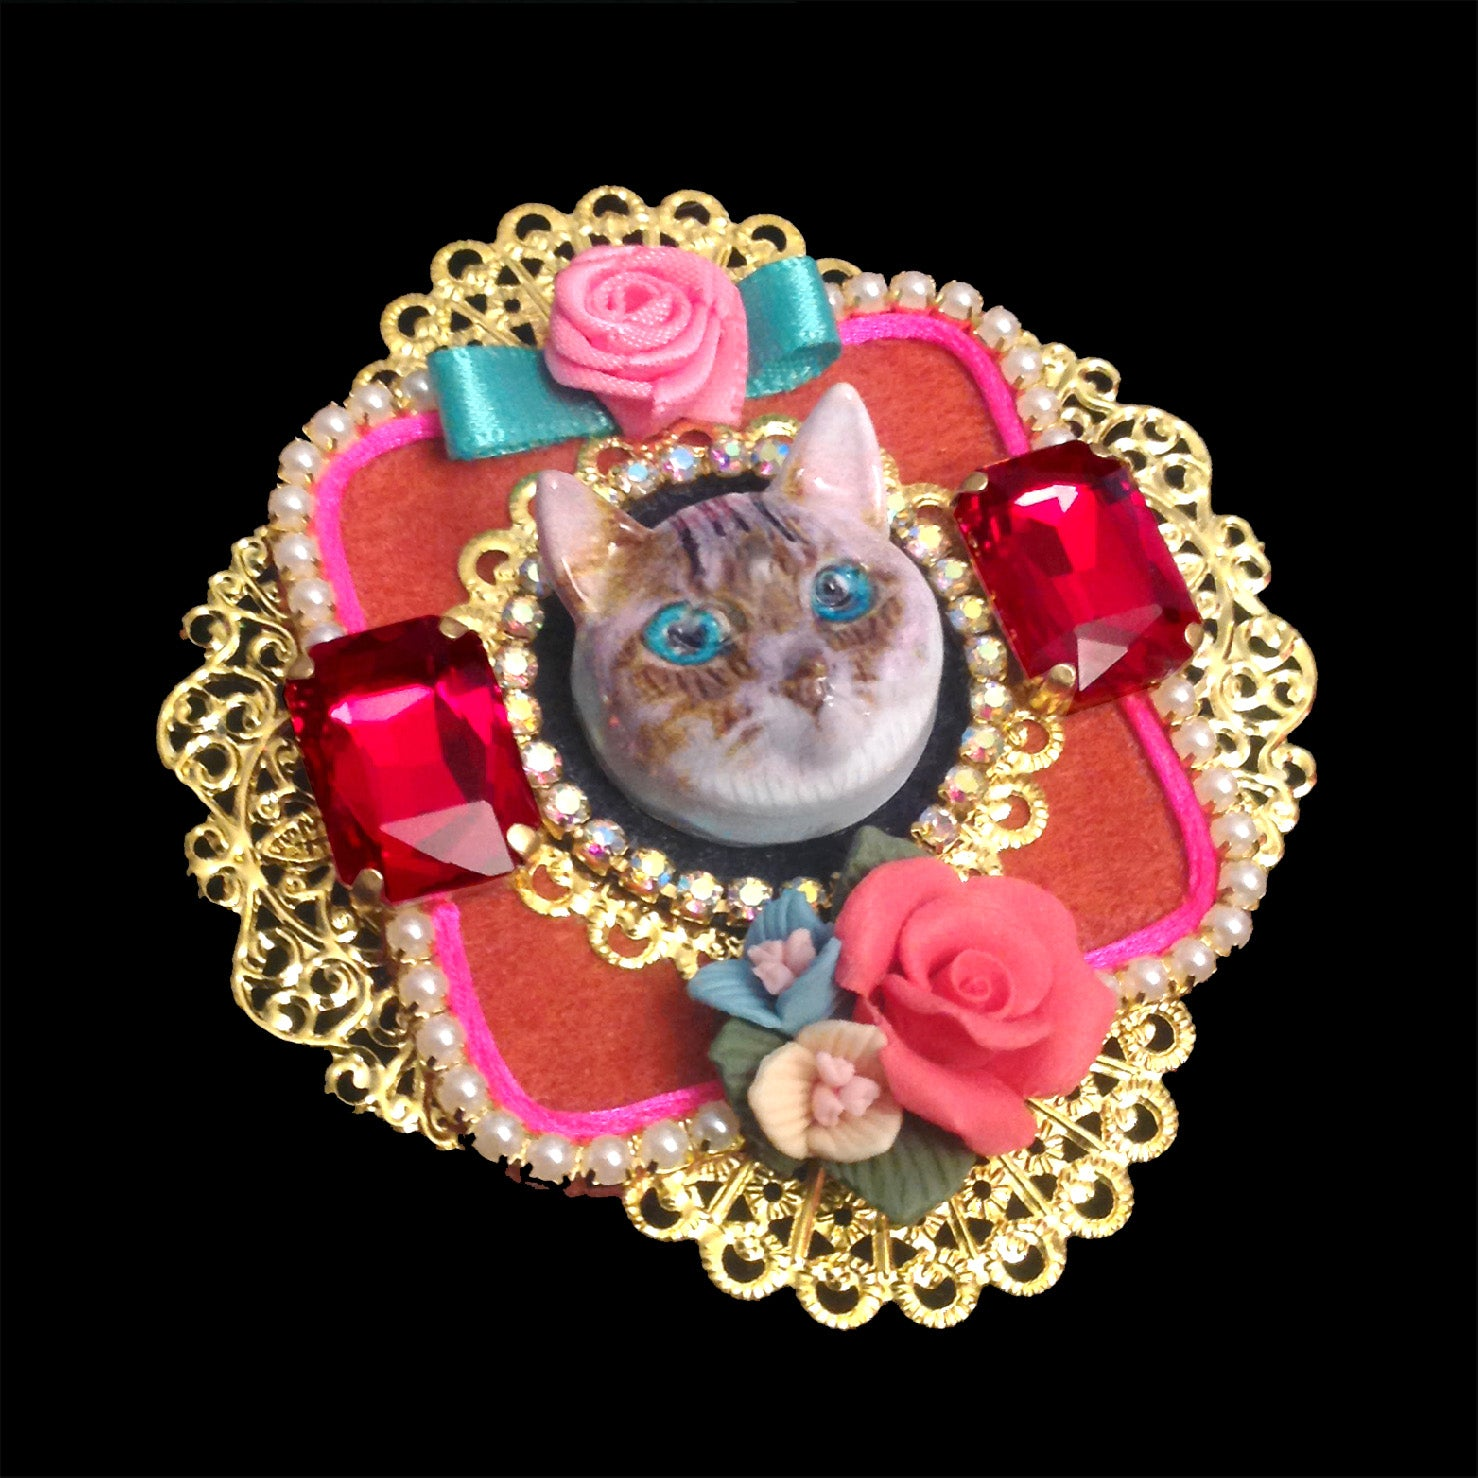 mouchkine jewelry vintage cat brooch chic made in France